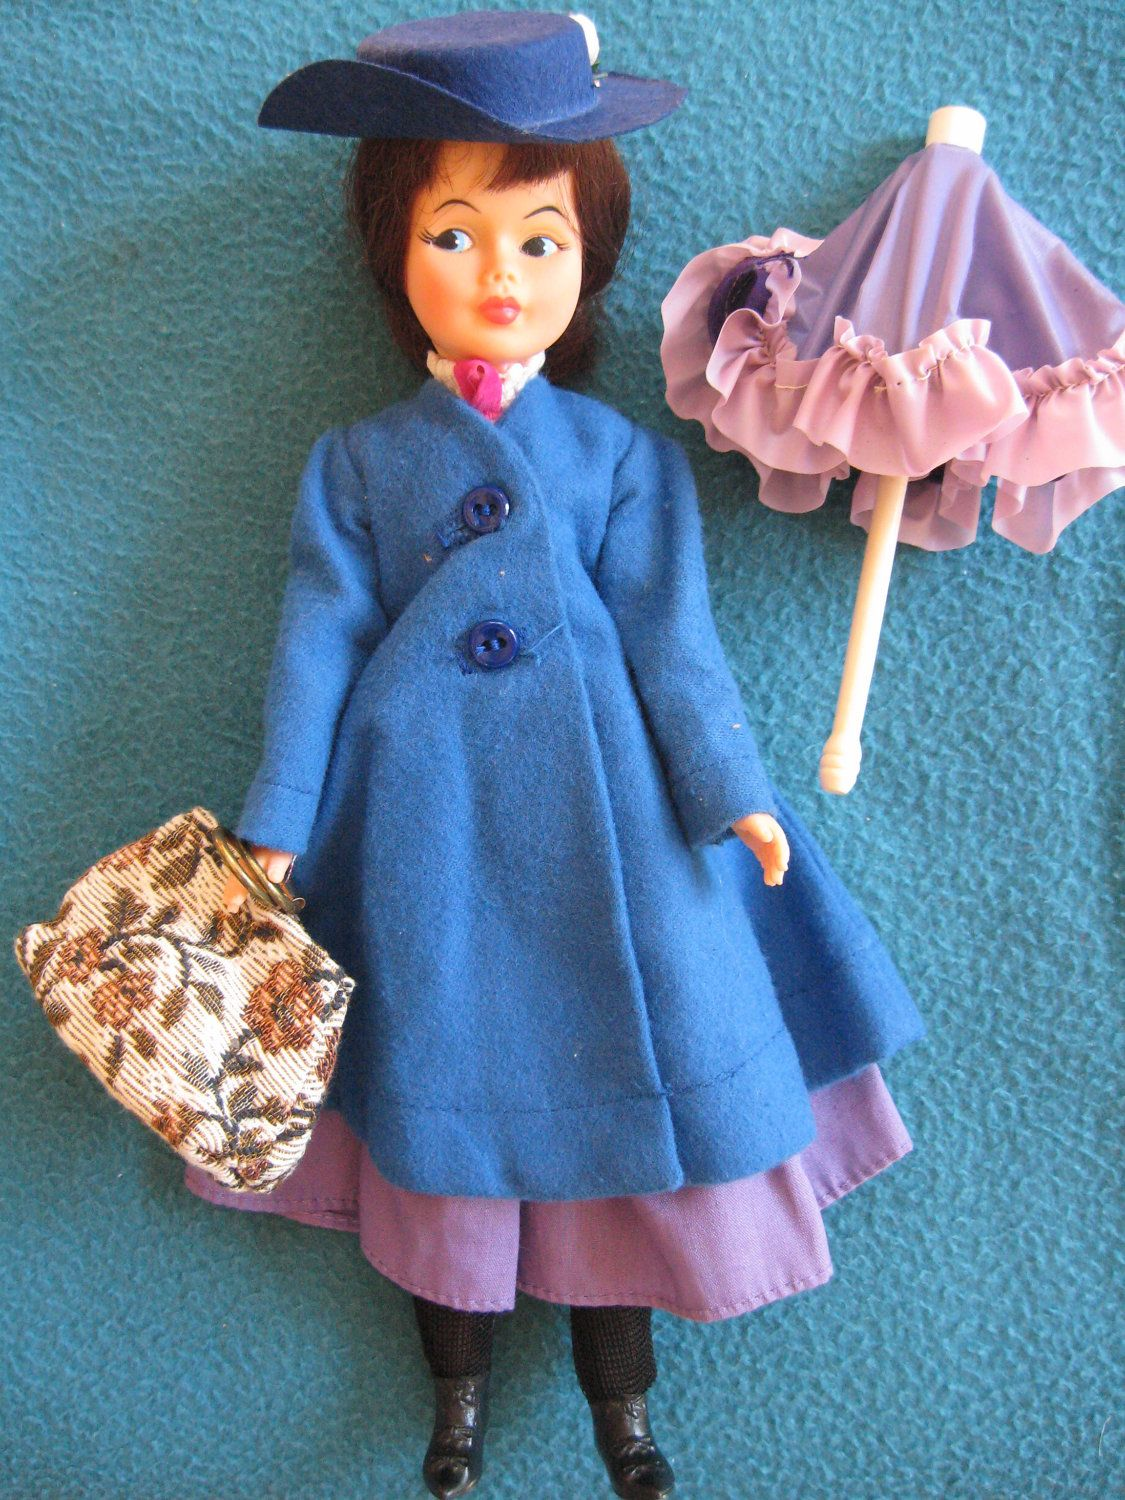 Toys For Mary Poppins : Mary poppins doll s pinterest